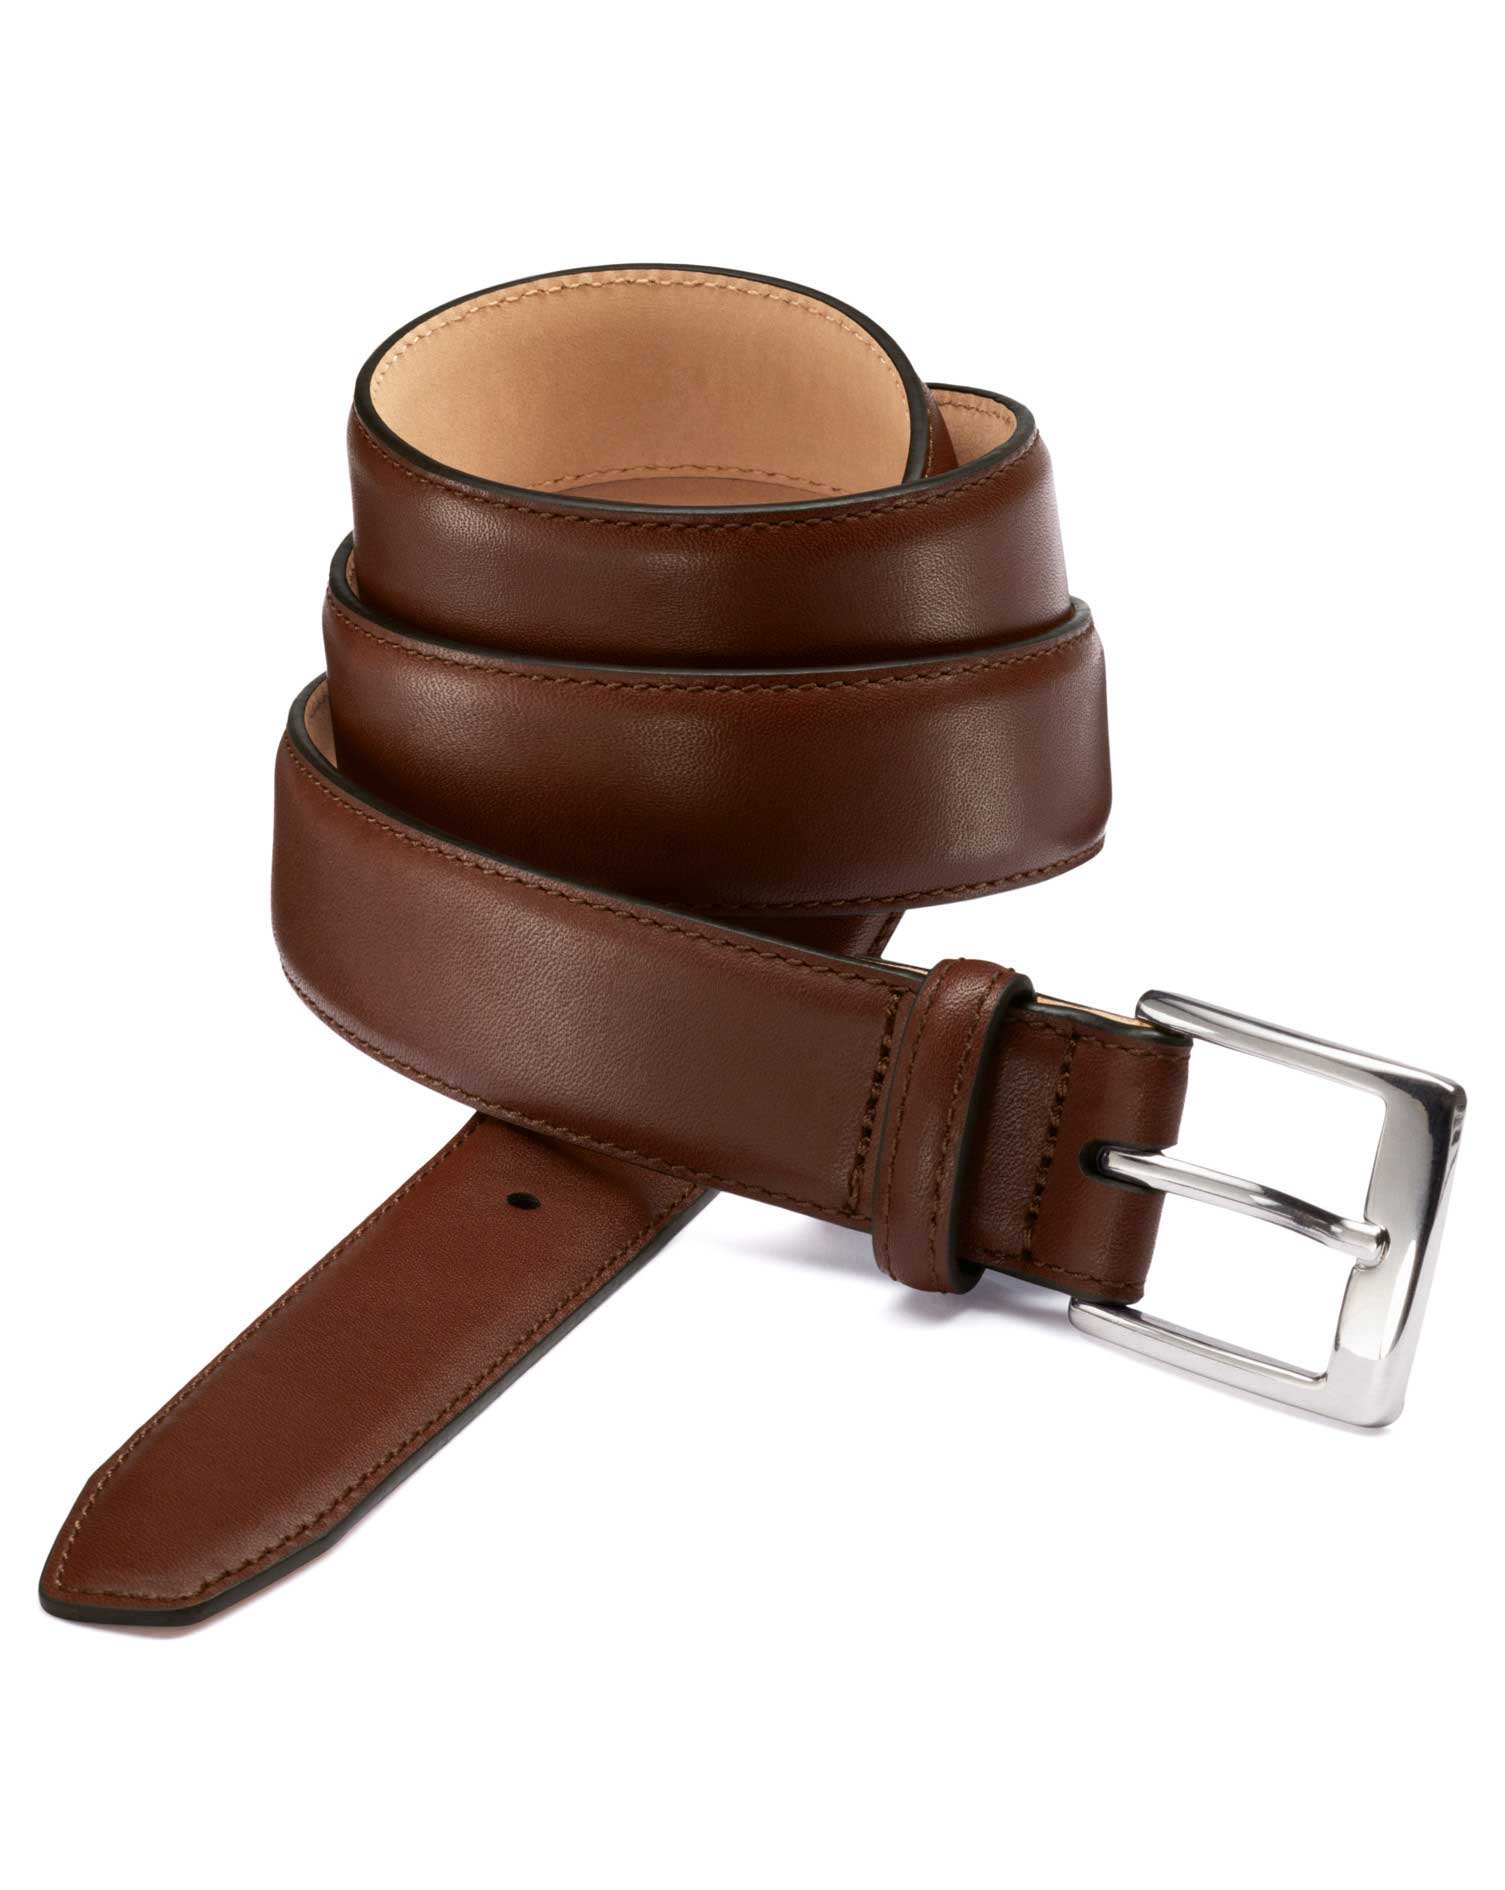 Brown Leather Formal Belt Size 30-32 by Charles Tyrwhitt